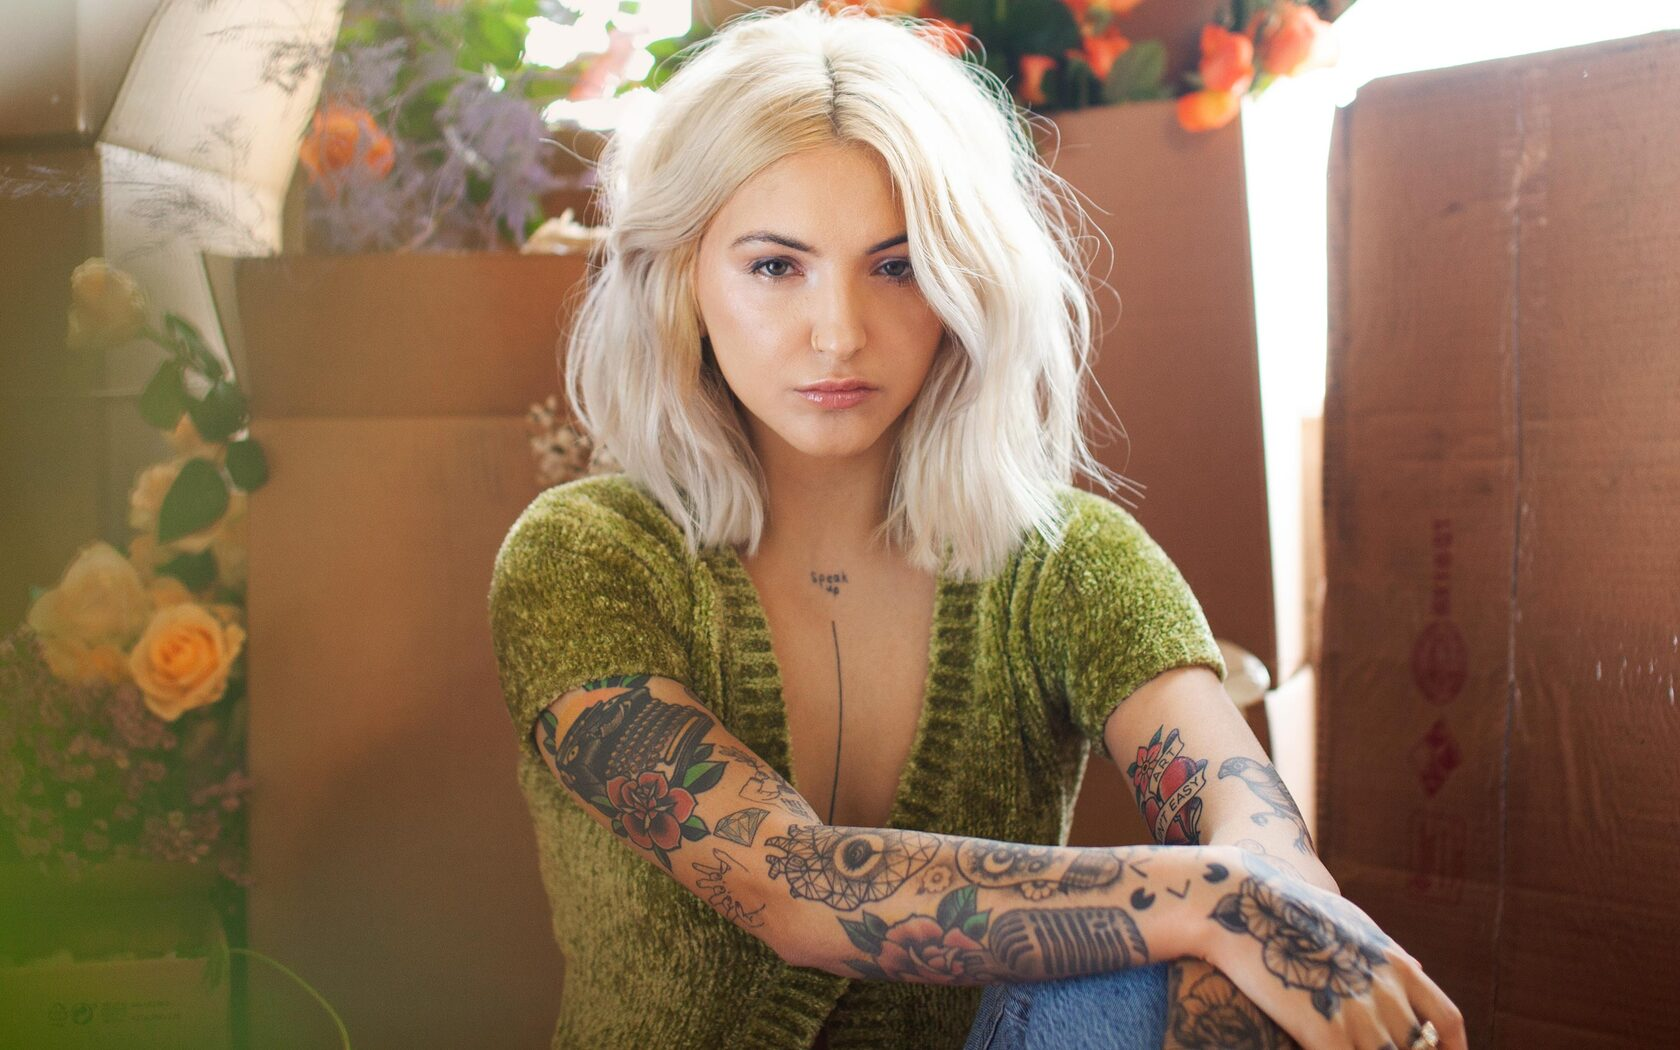 julia-michaels-2019-new-6v.jpg